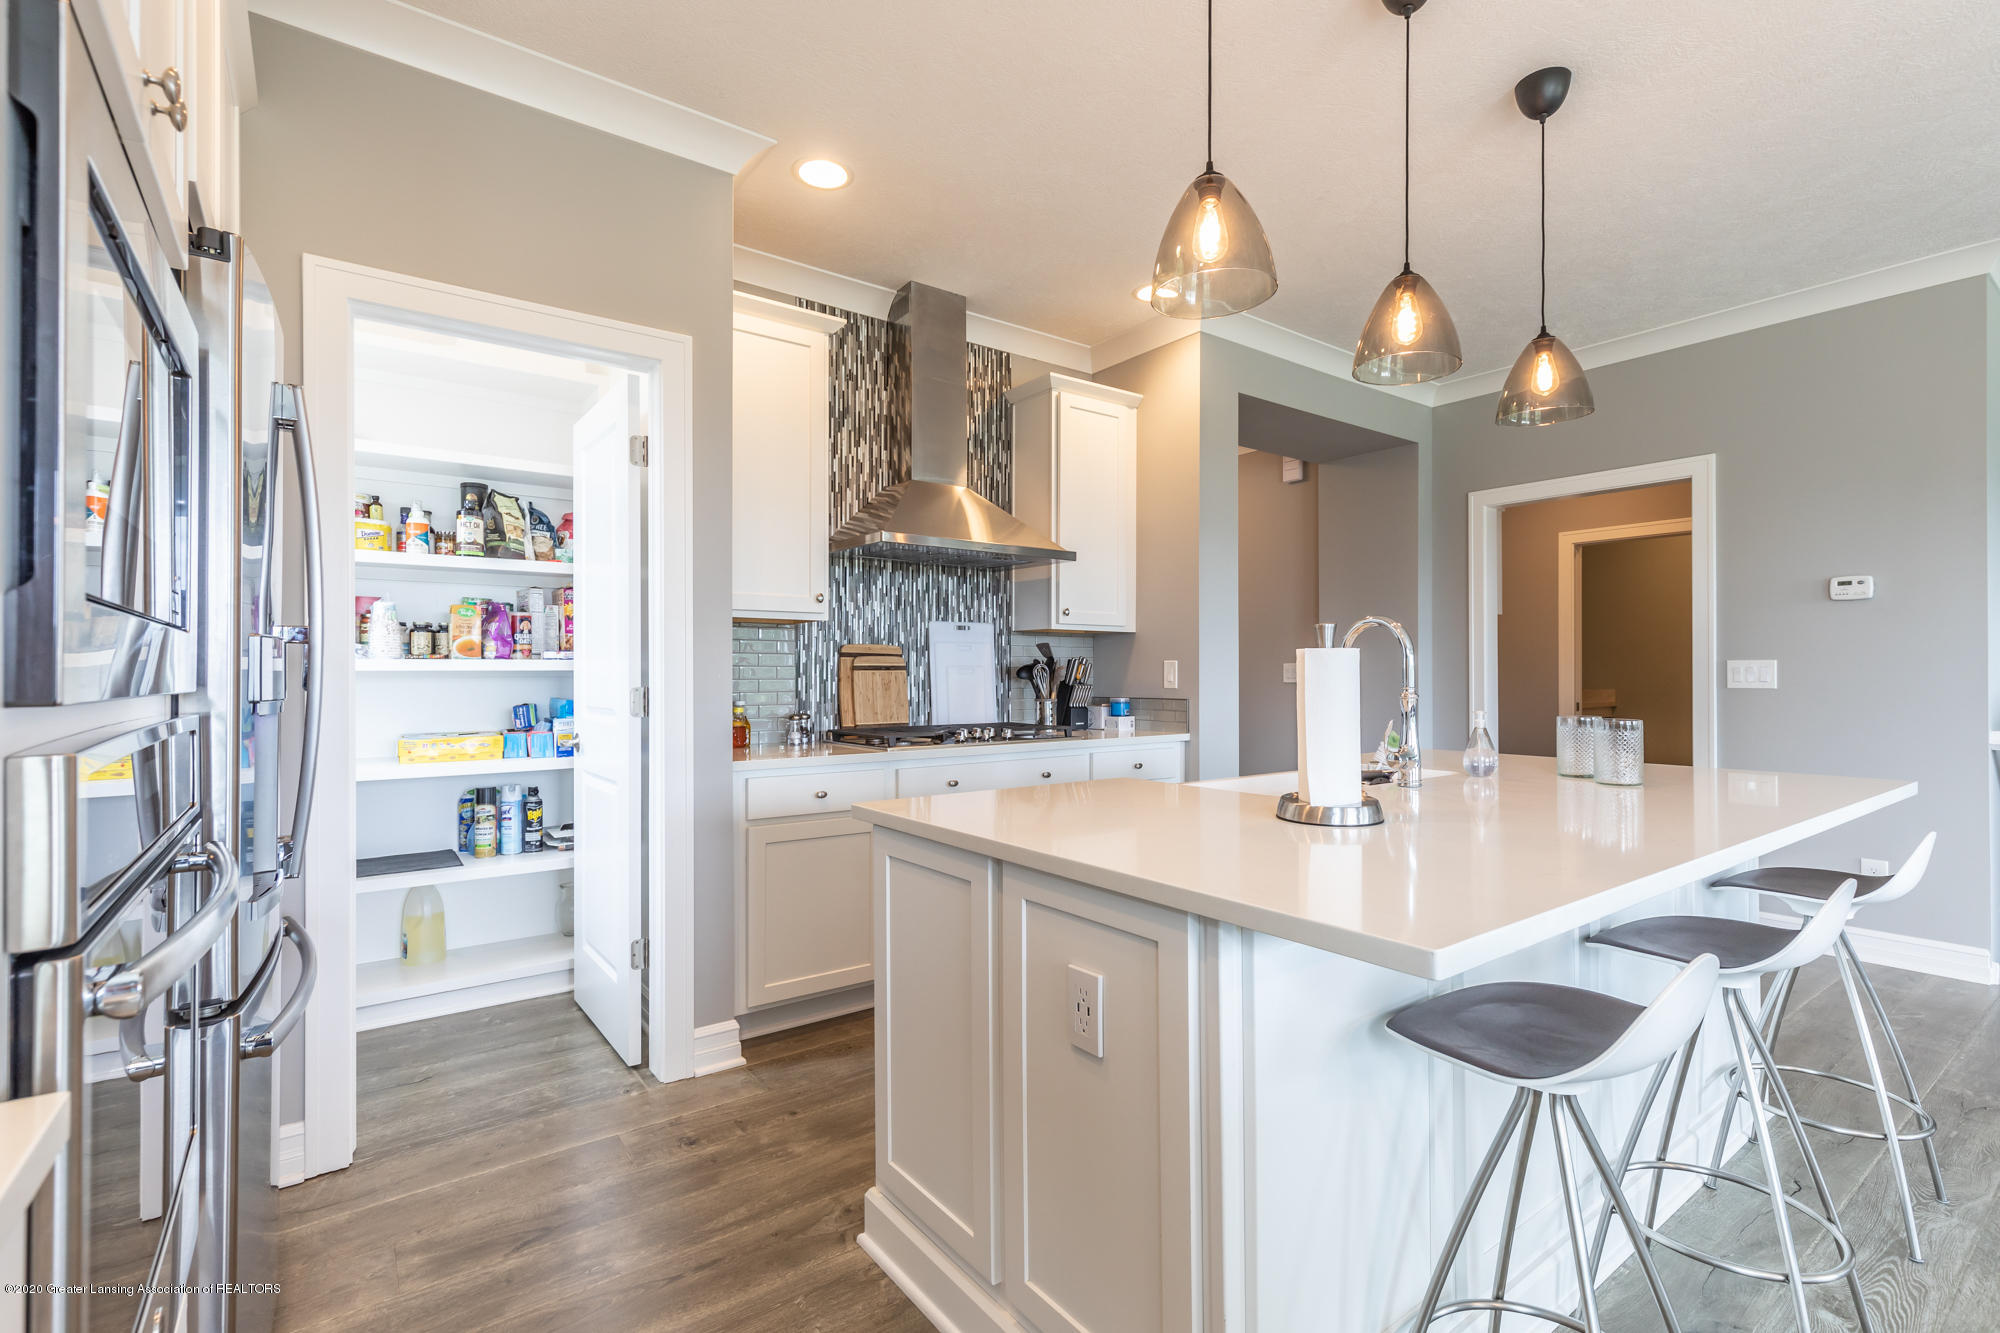 4020 Hagadorn Rd - Kitchen 8 - 11